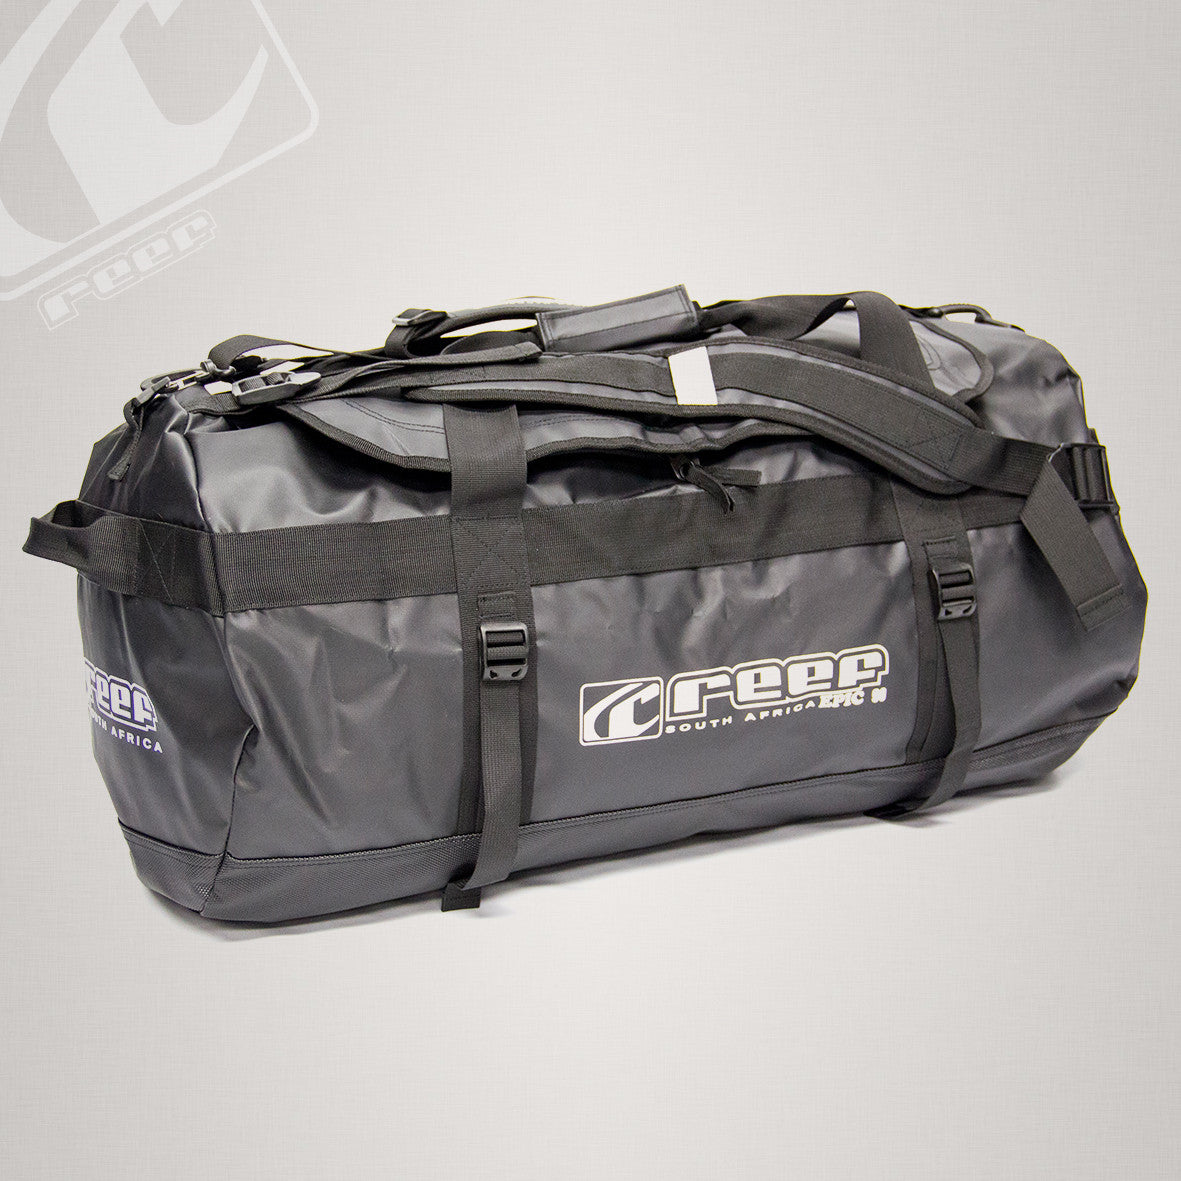 Reef EPIC Duffel Bag Large - Reef Wetsuits Online Store 666a1960251f9